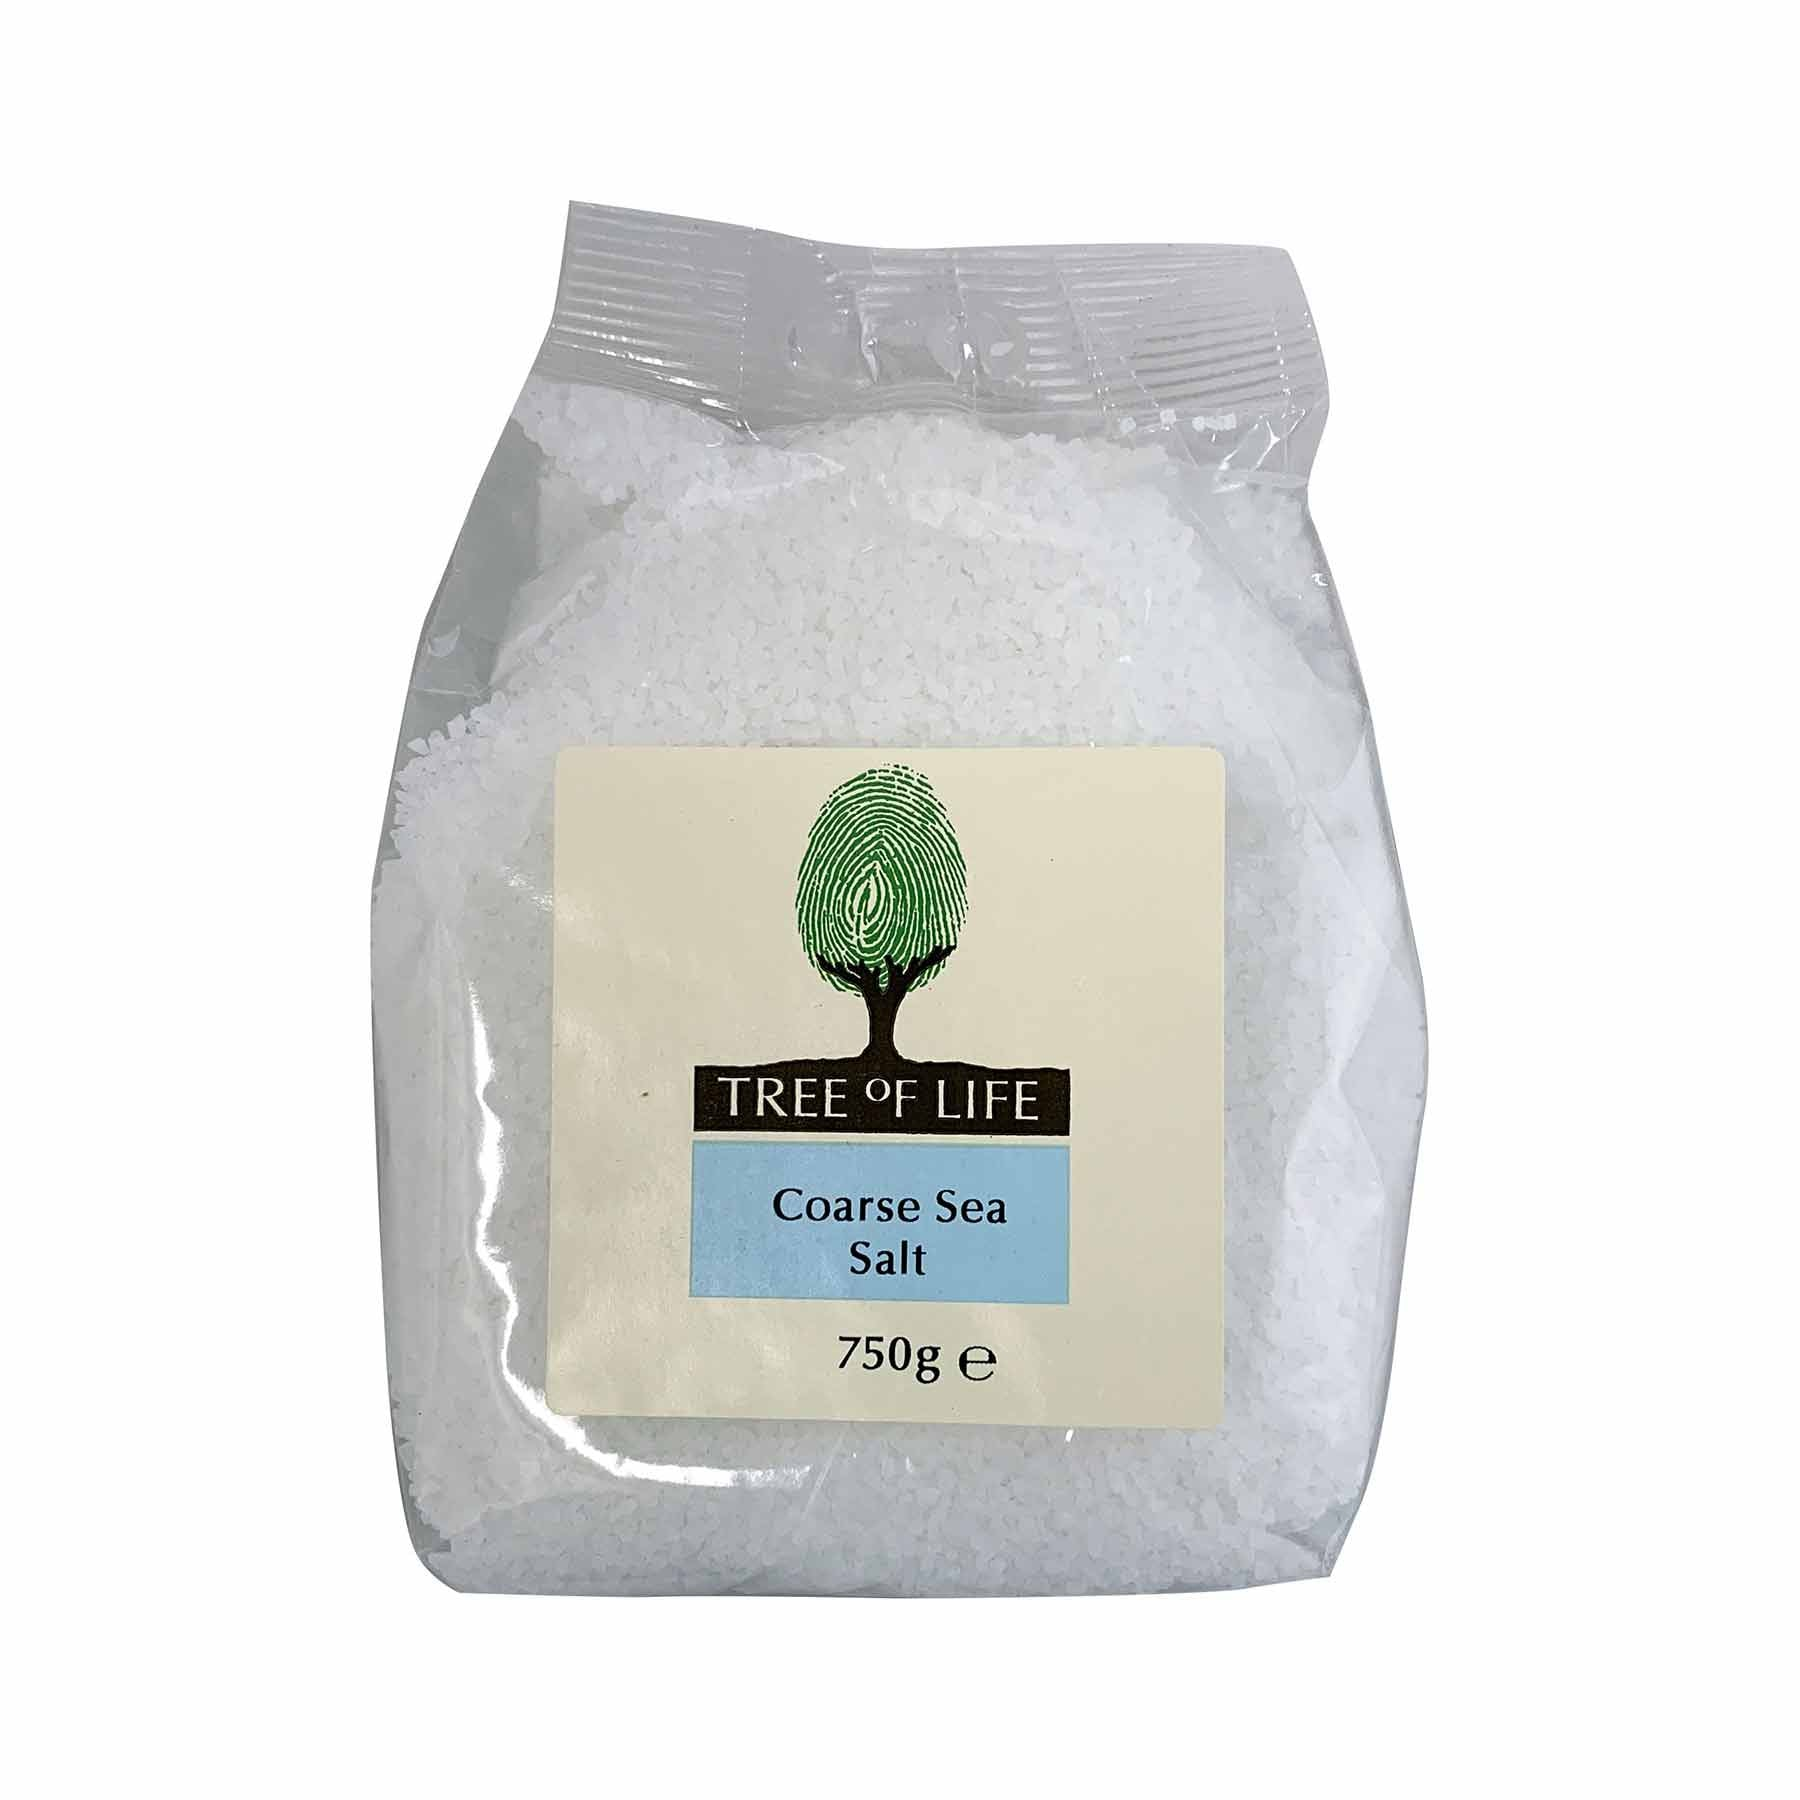 Packshot - Coarse Sea Salt by Tree of Life